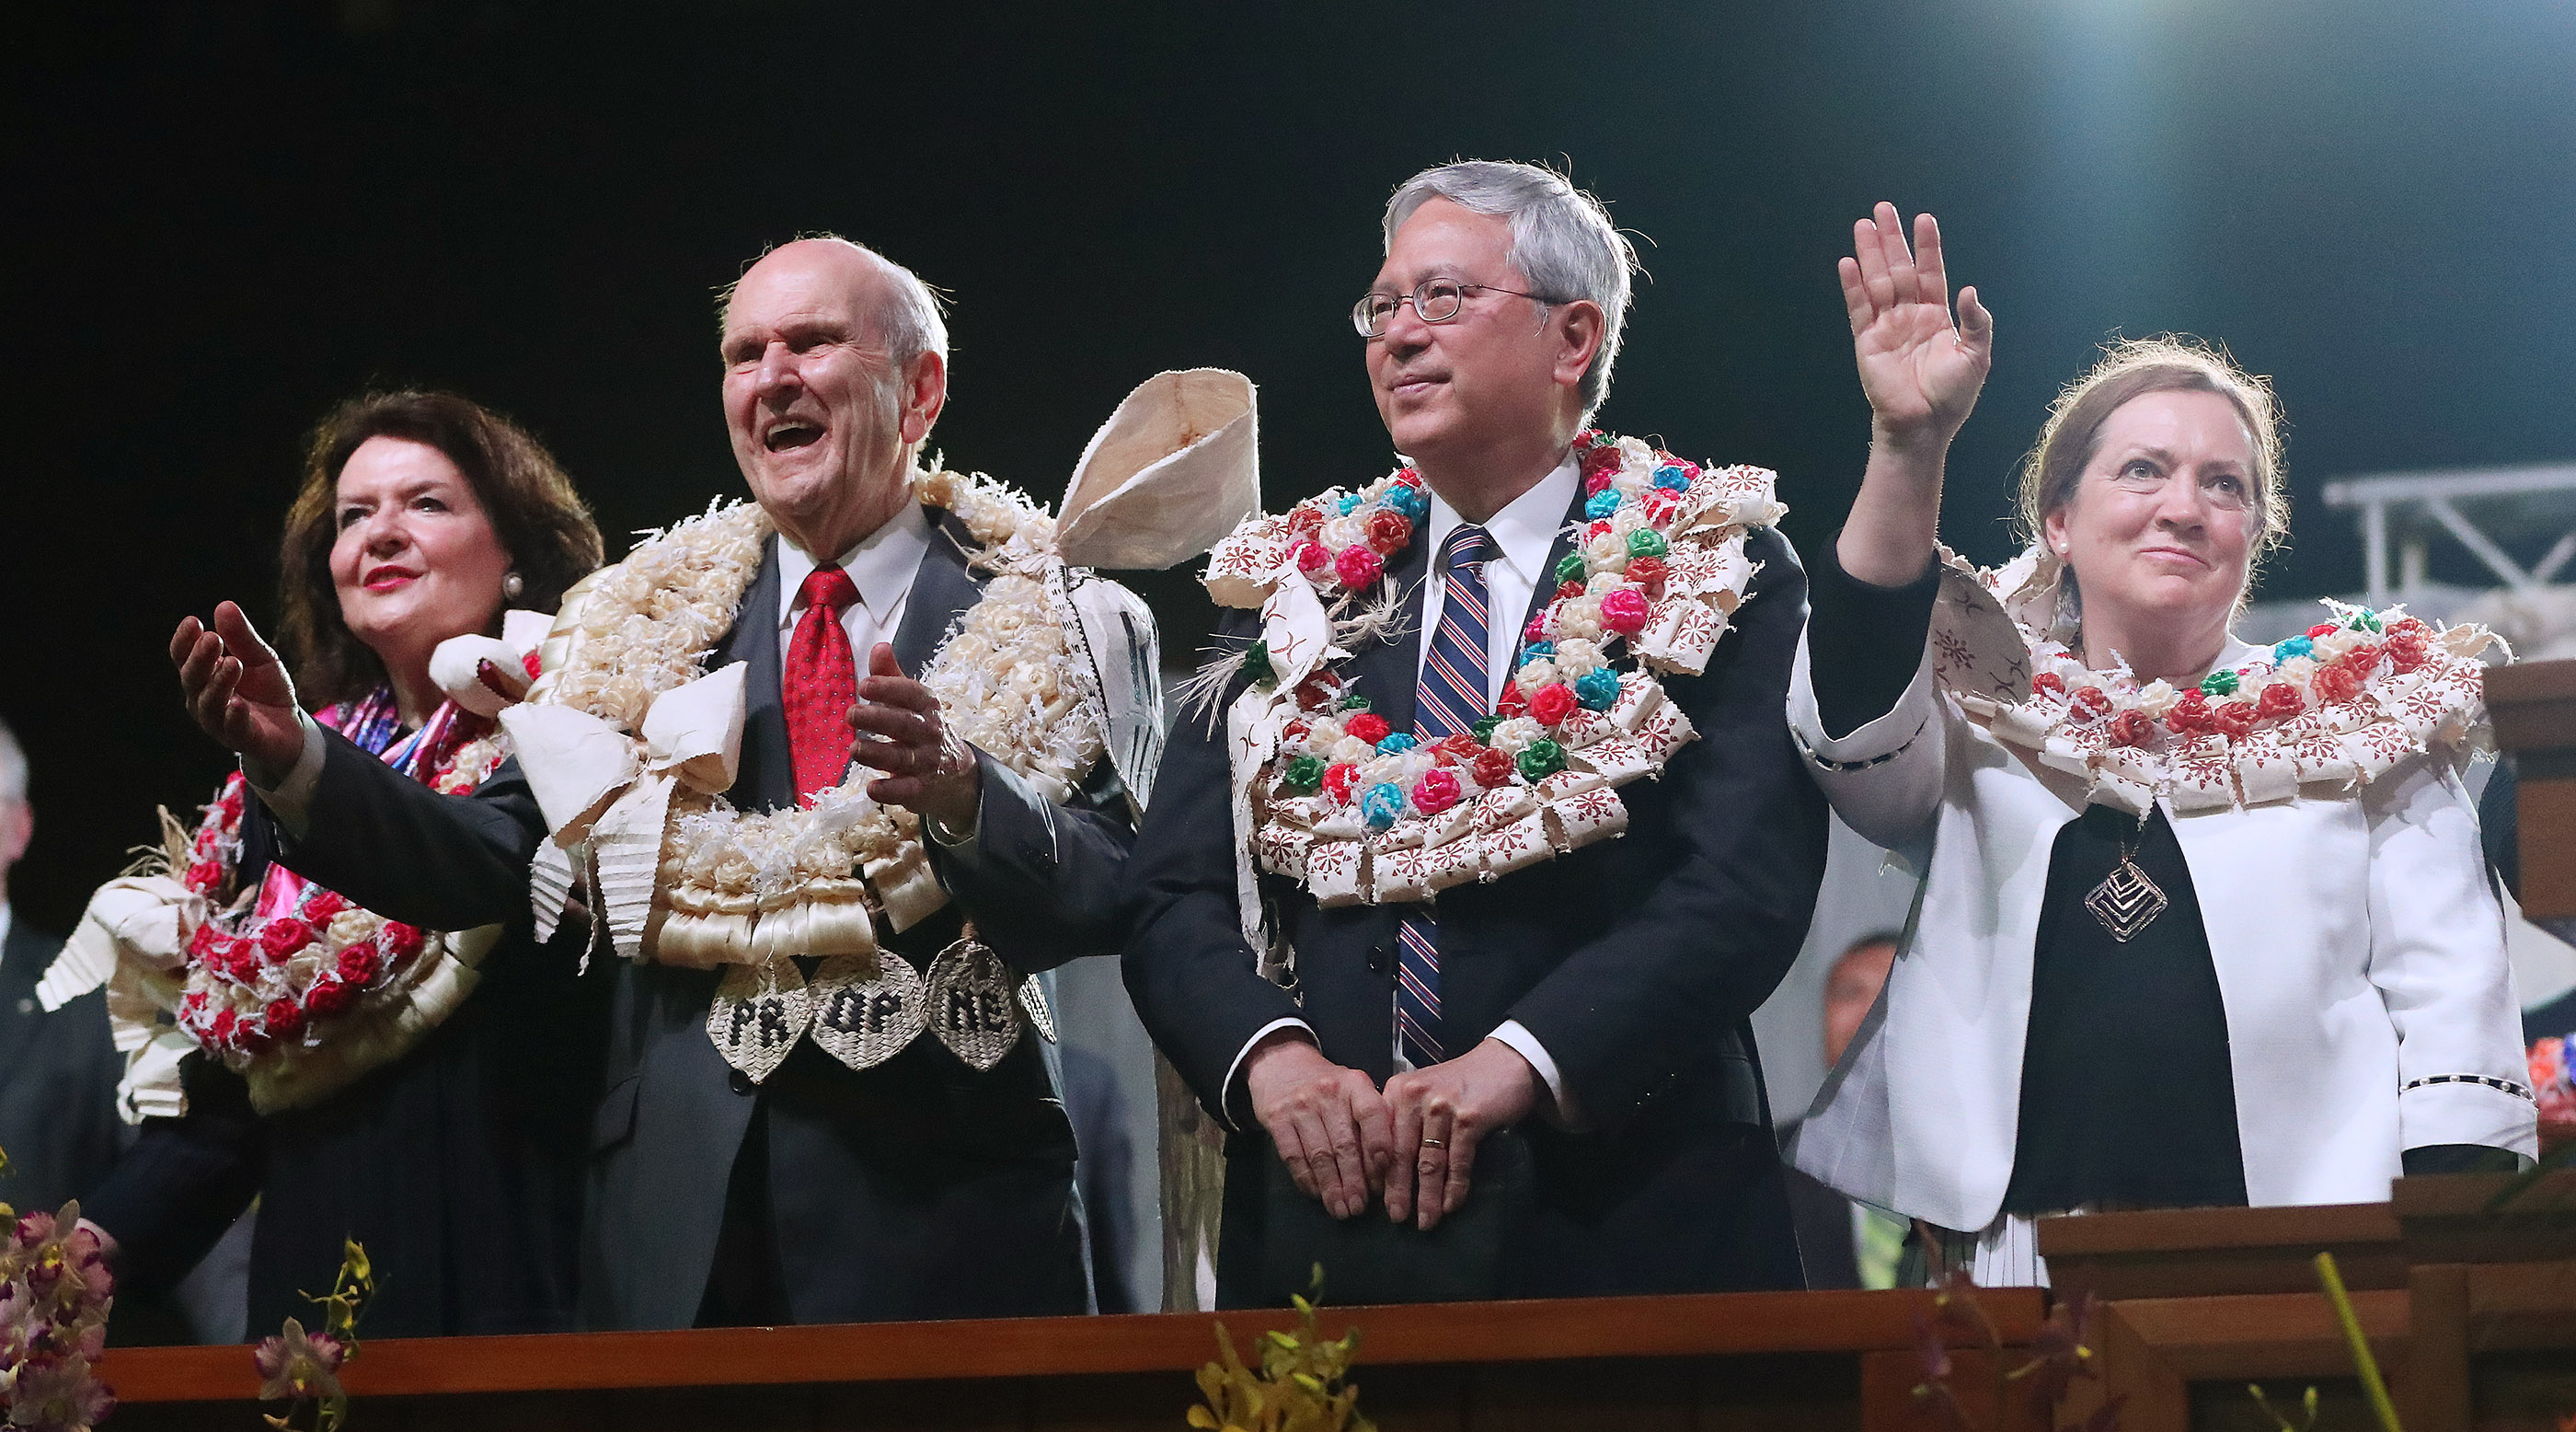 President Russell M. Nelson of The Church of Jesus Christ of Latter-day Saints and his wife Sister Wendy Nelson and Elder Elder Gerrit W. Gong, of The Church of Jesus Christ of Latter-day Saints' Quorum of the Twelve Apostles and bis wife Sister Susan Gong wave goodbye to attendees after a devotional in Nausori, Fiji on May 22, 2019.